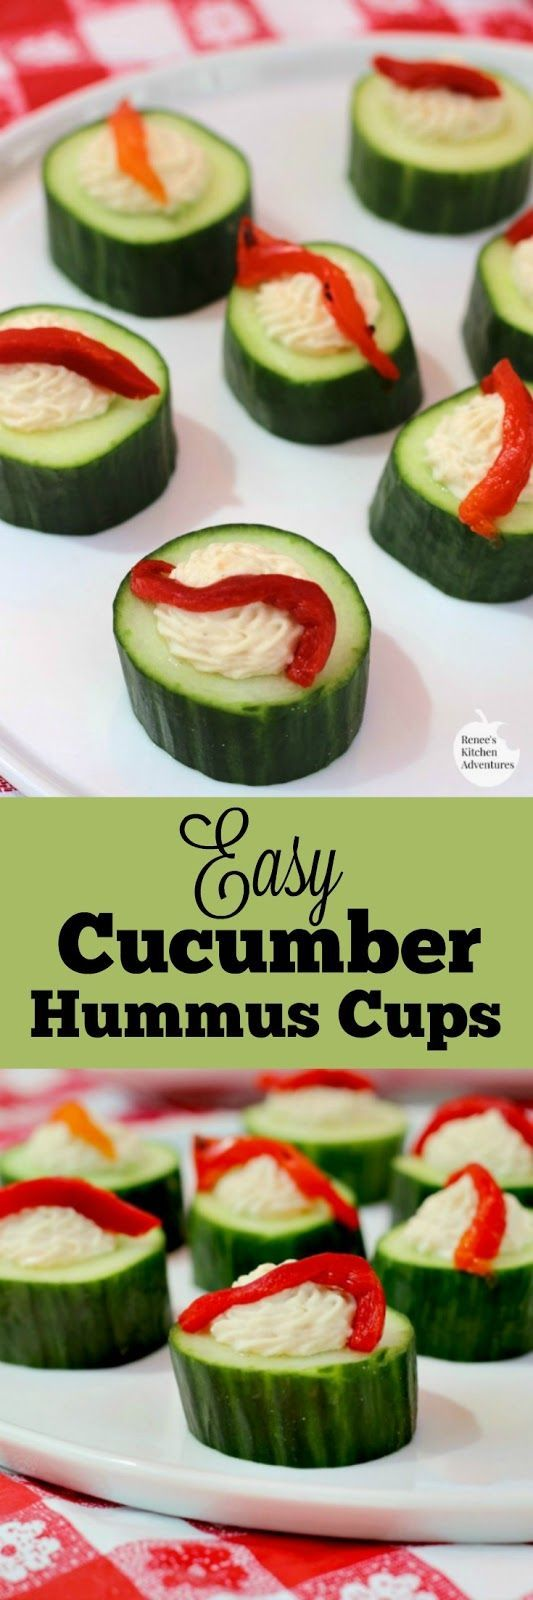 Easy Cucumber Hummus Cups | by Renee's Kitchen Adventures - quick, easy, healthy recipe for no-bake appetizer or snack. Vegan, Vegetarian: